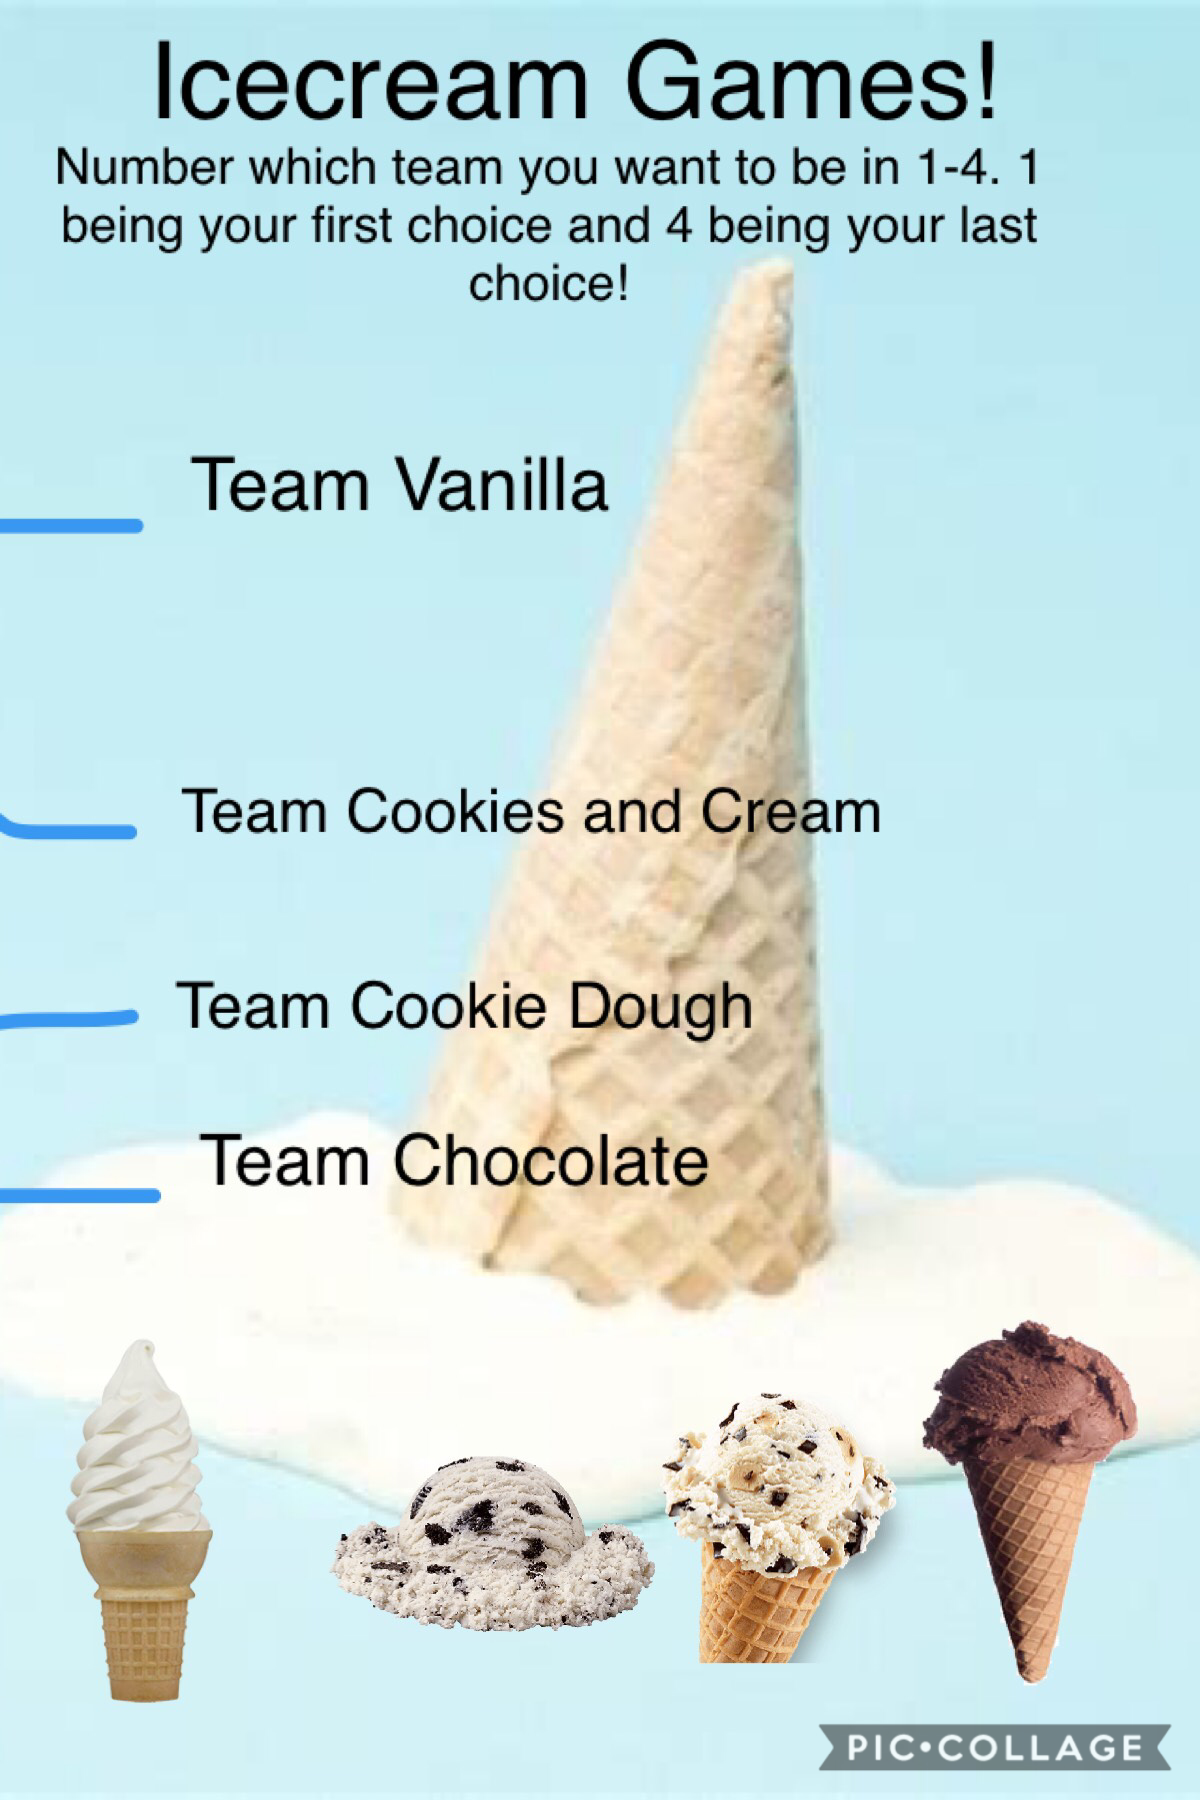 Join the icecream games!